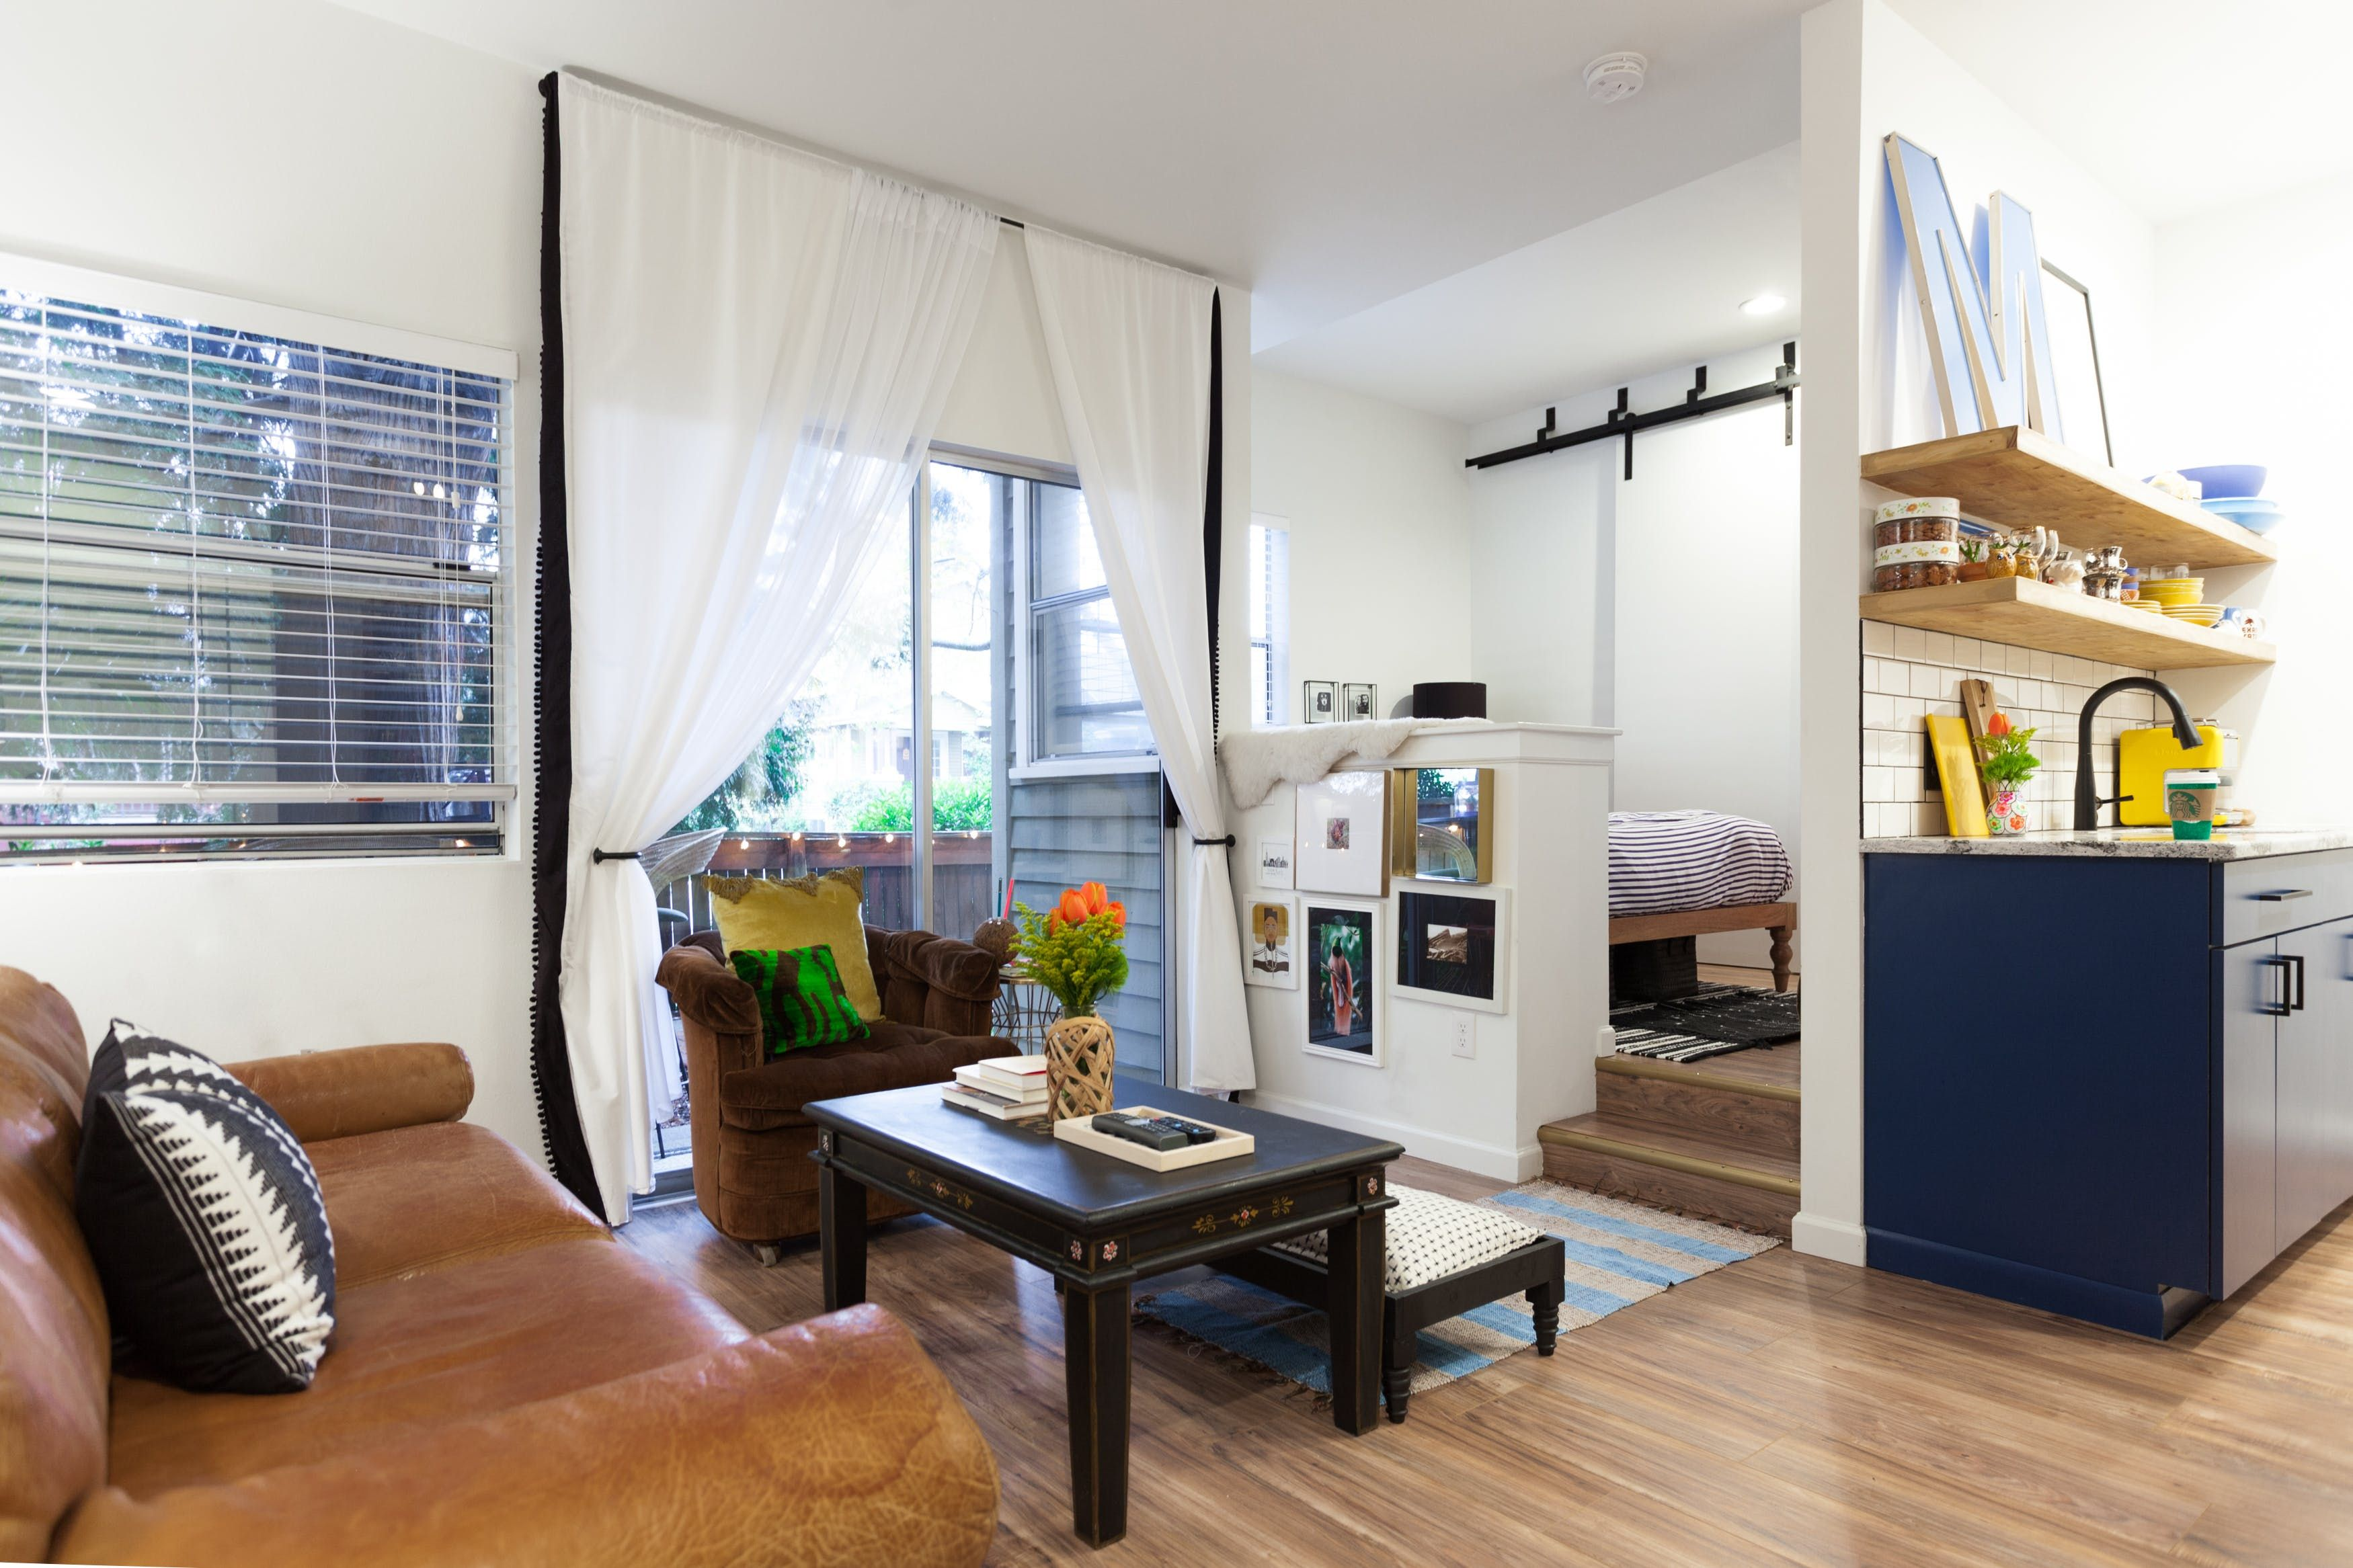 This 366 Square Foot Studio Has Some Of The Best Small Space Ideas